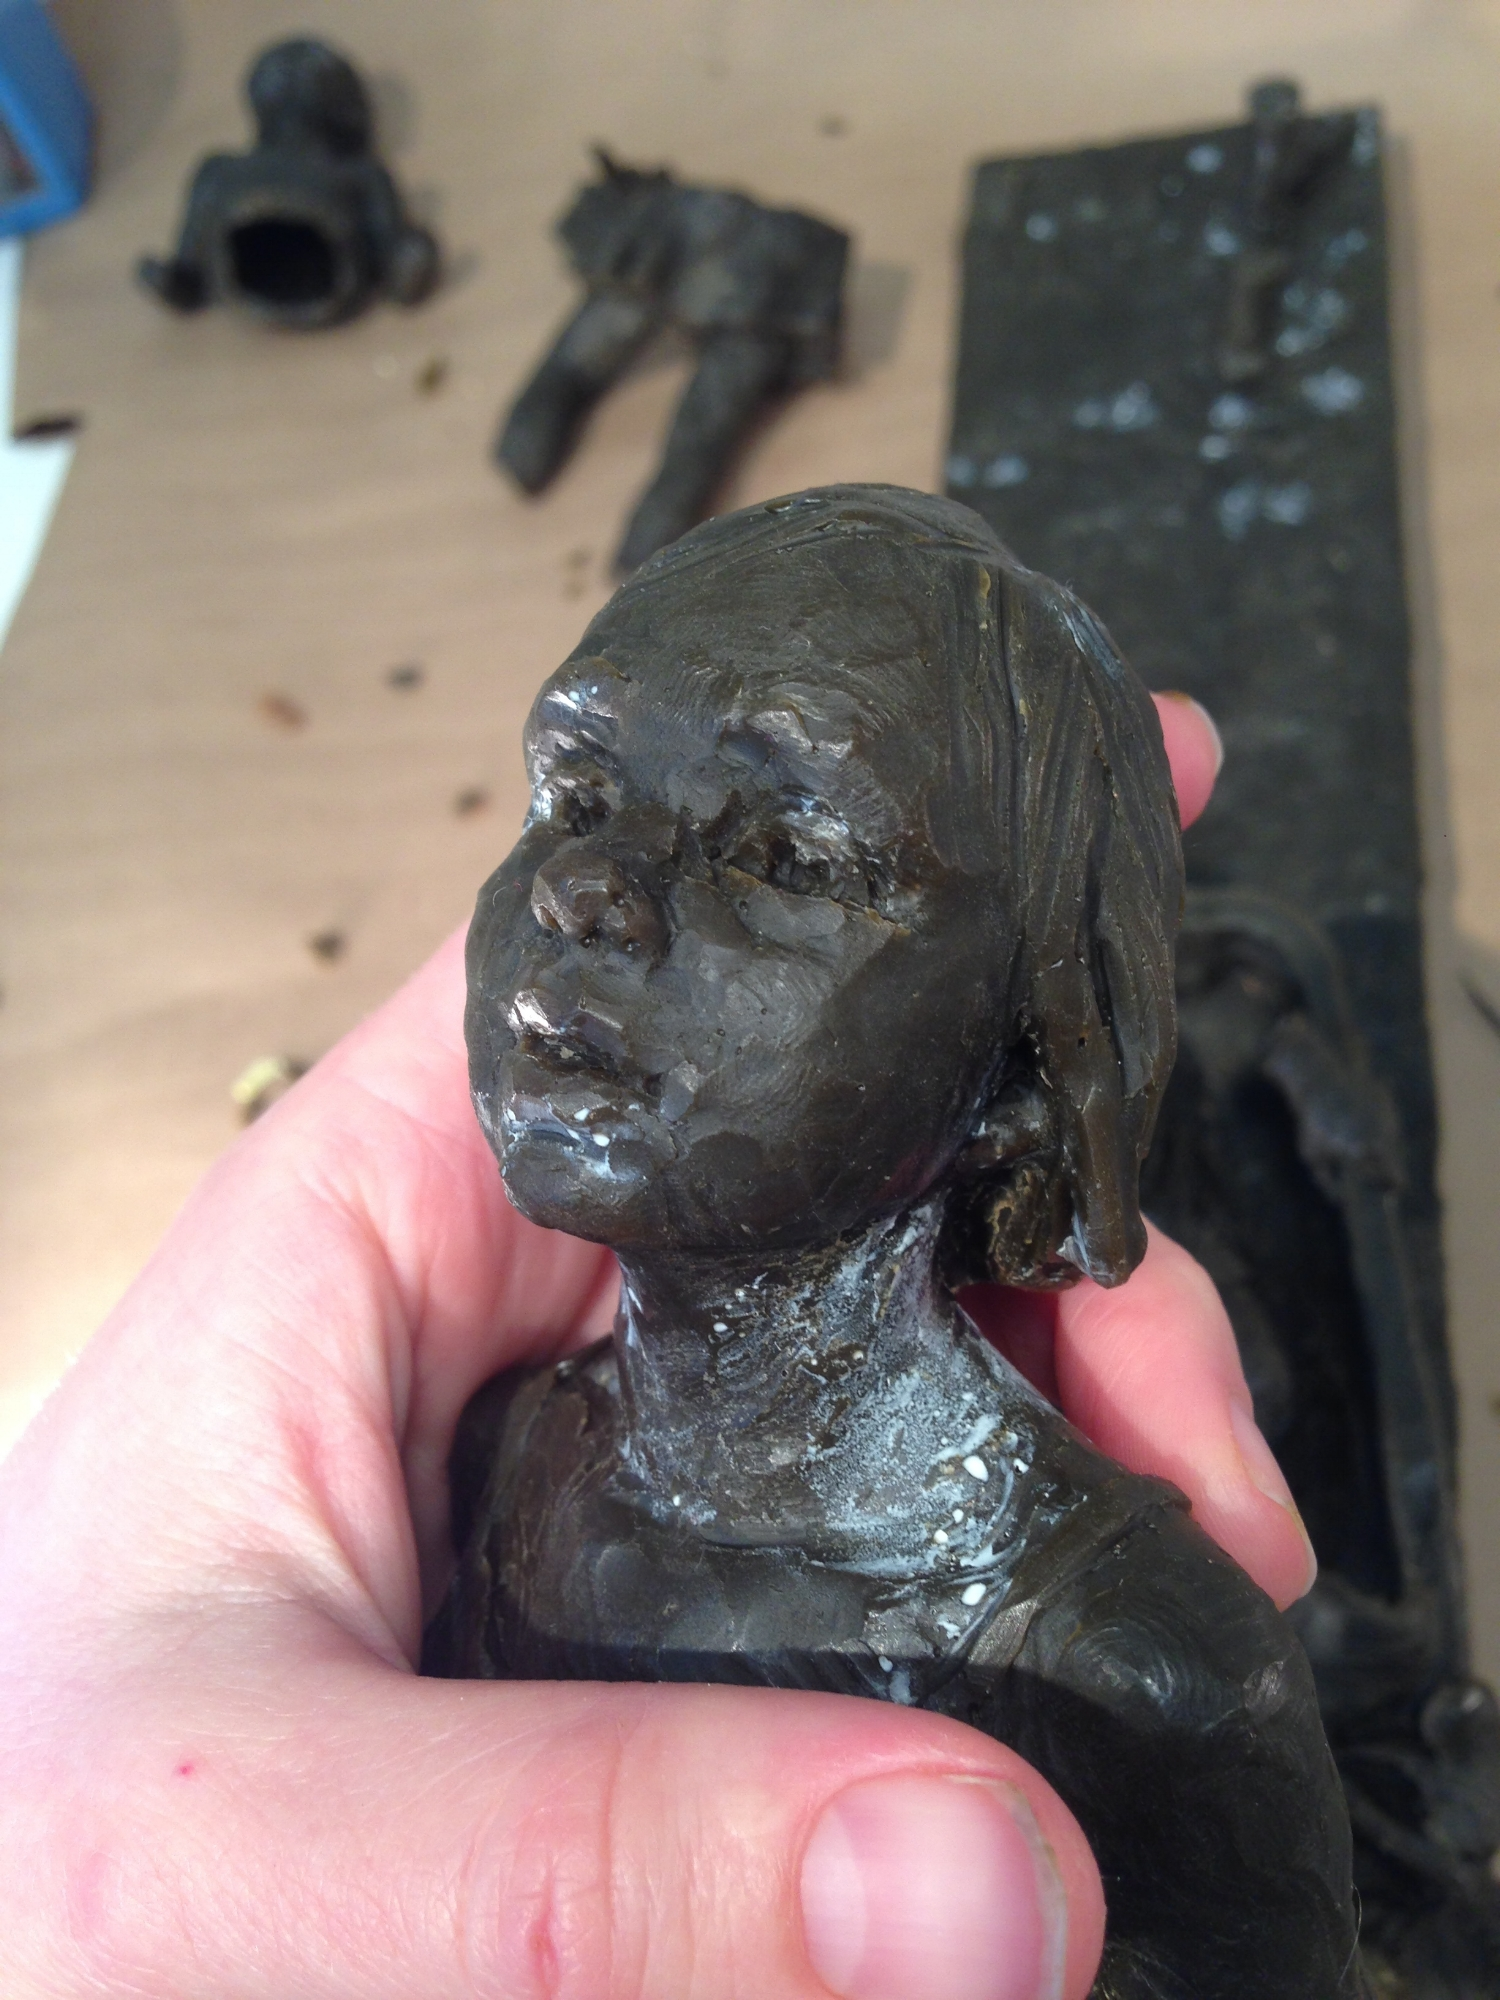 Mardie holding the wax cast of the girl while cleaning up imperfections in the wax as part of the process in bronze casting.